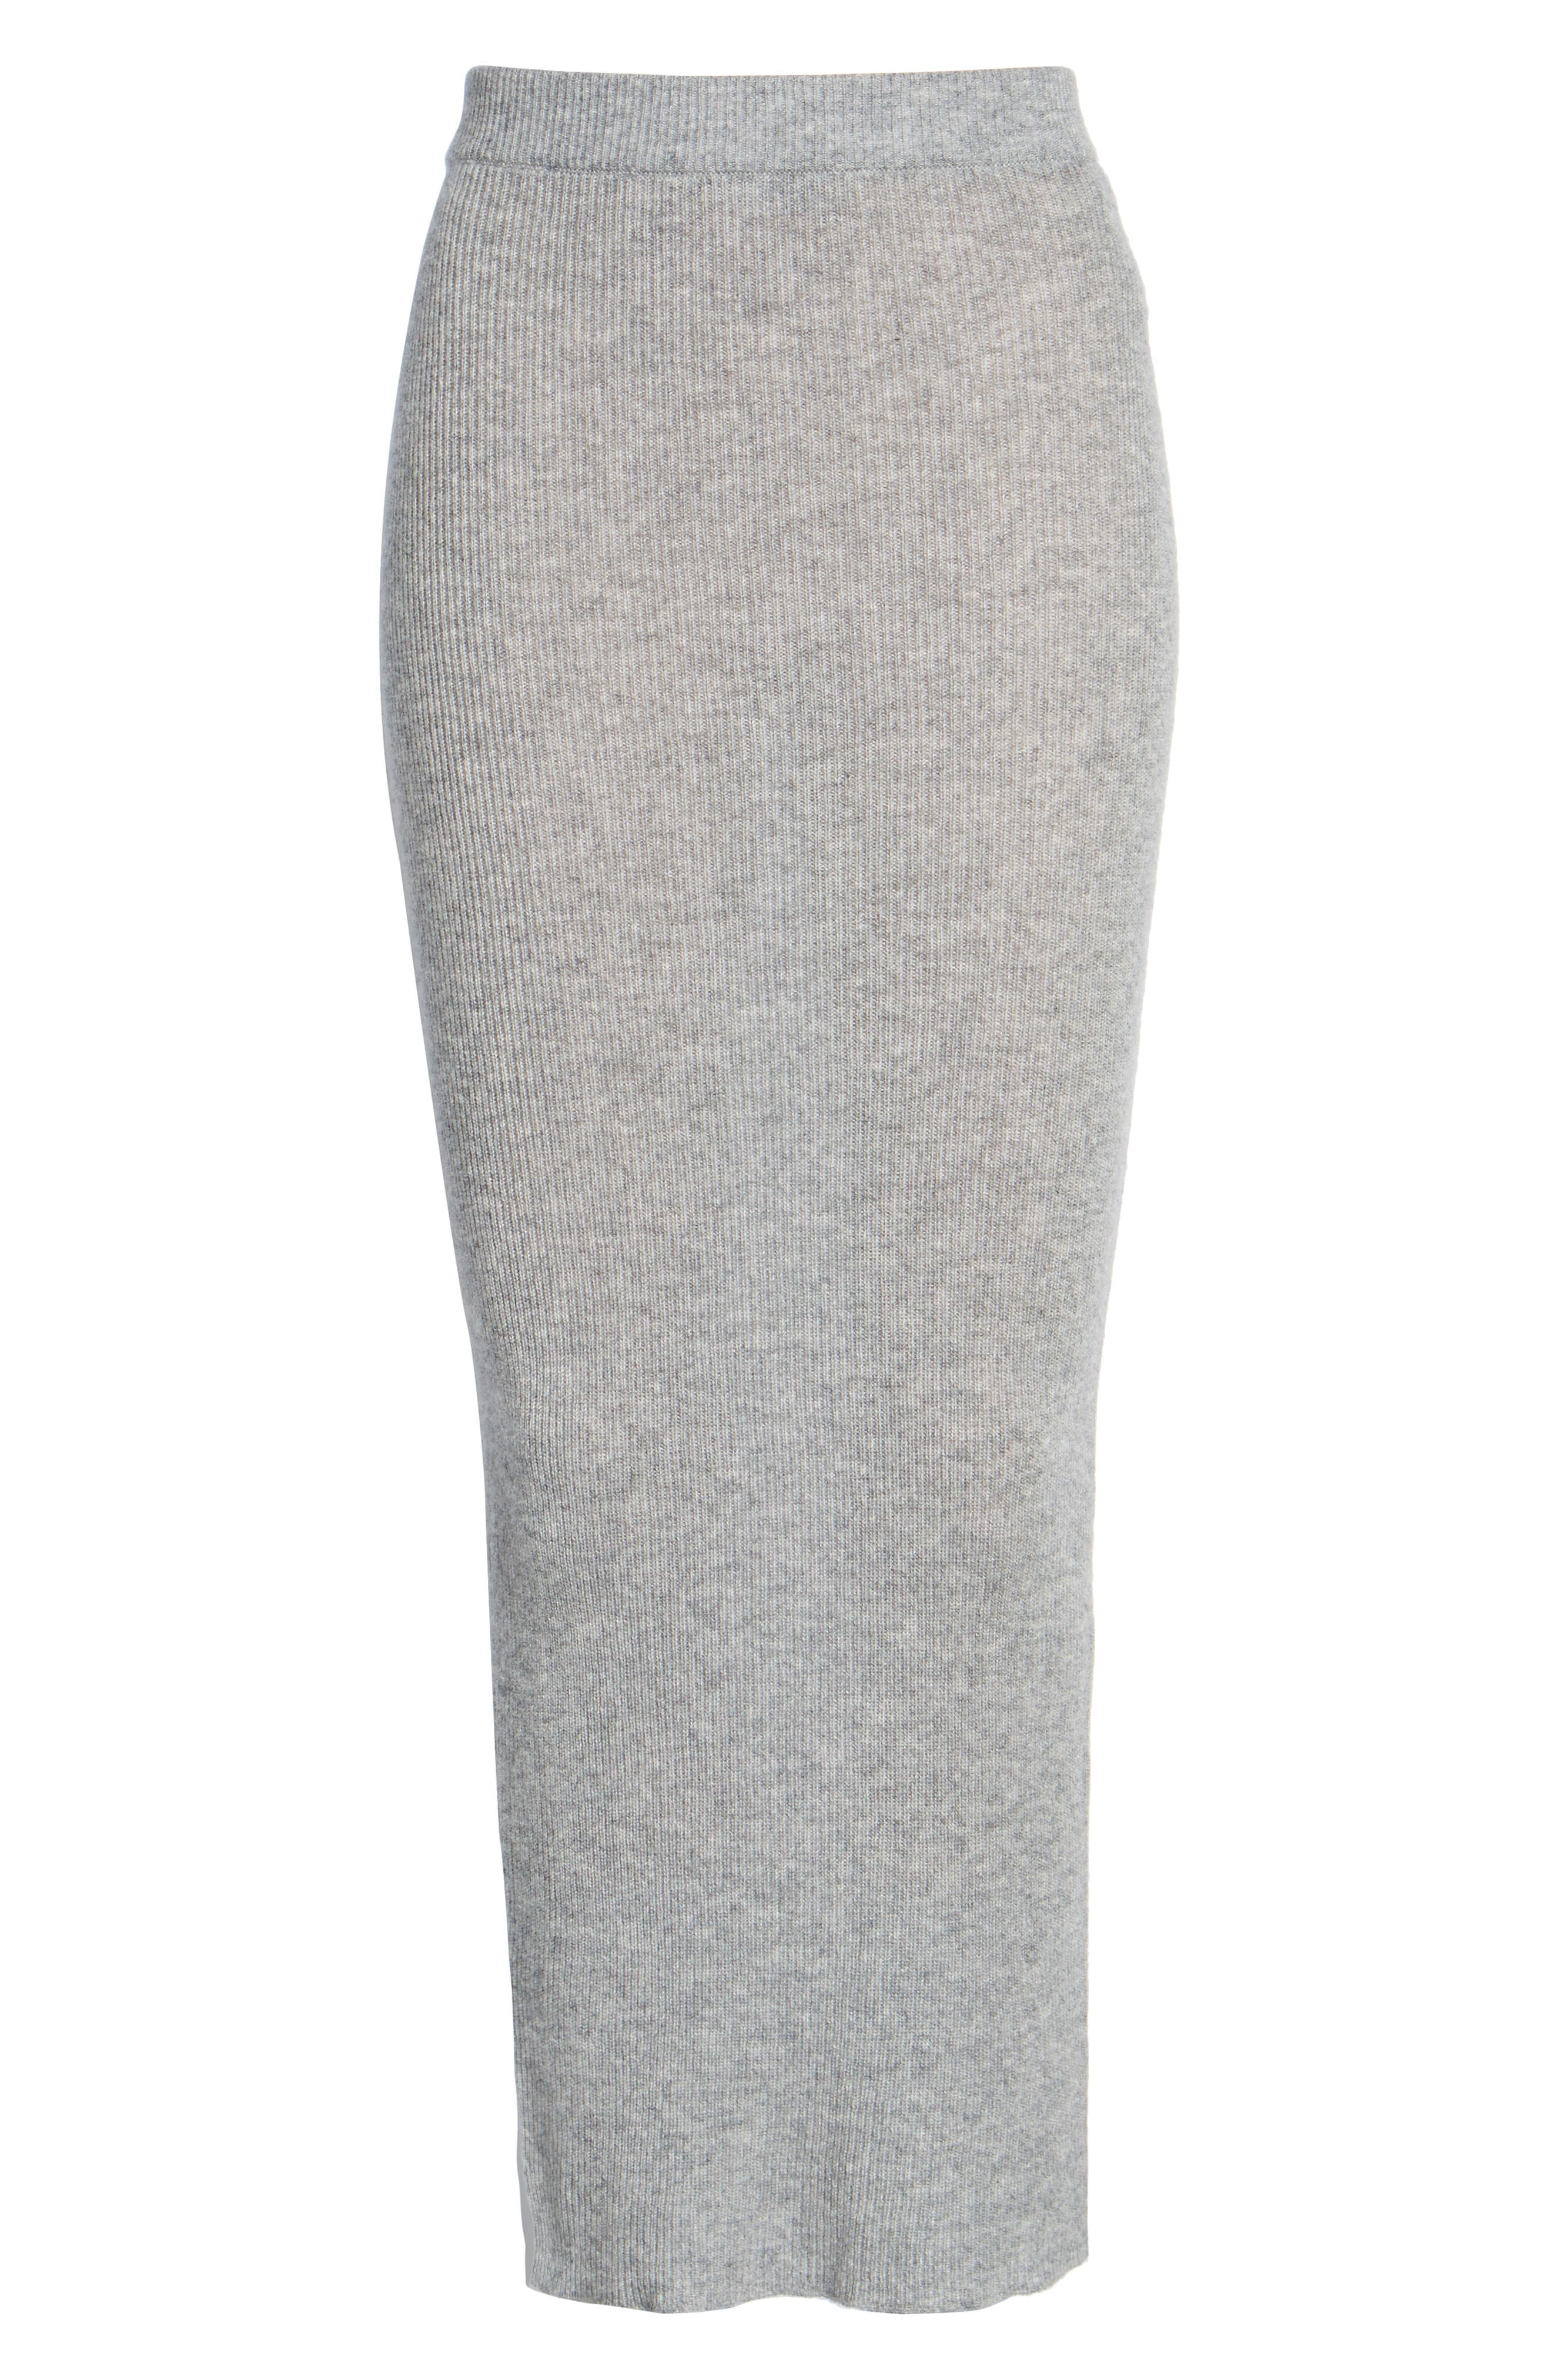 Cashmere Skirt,                             Alternate thumbnail 6, color,                             Heather Grey